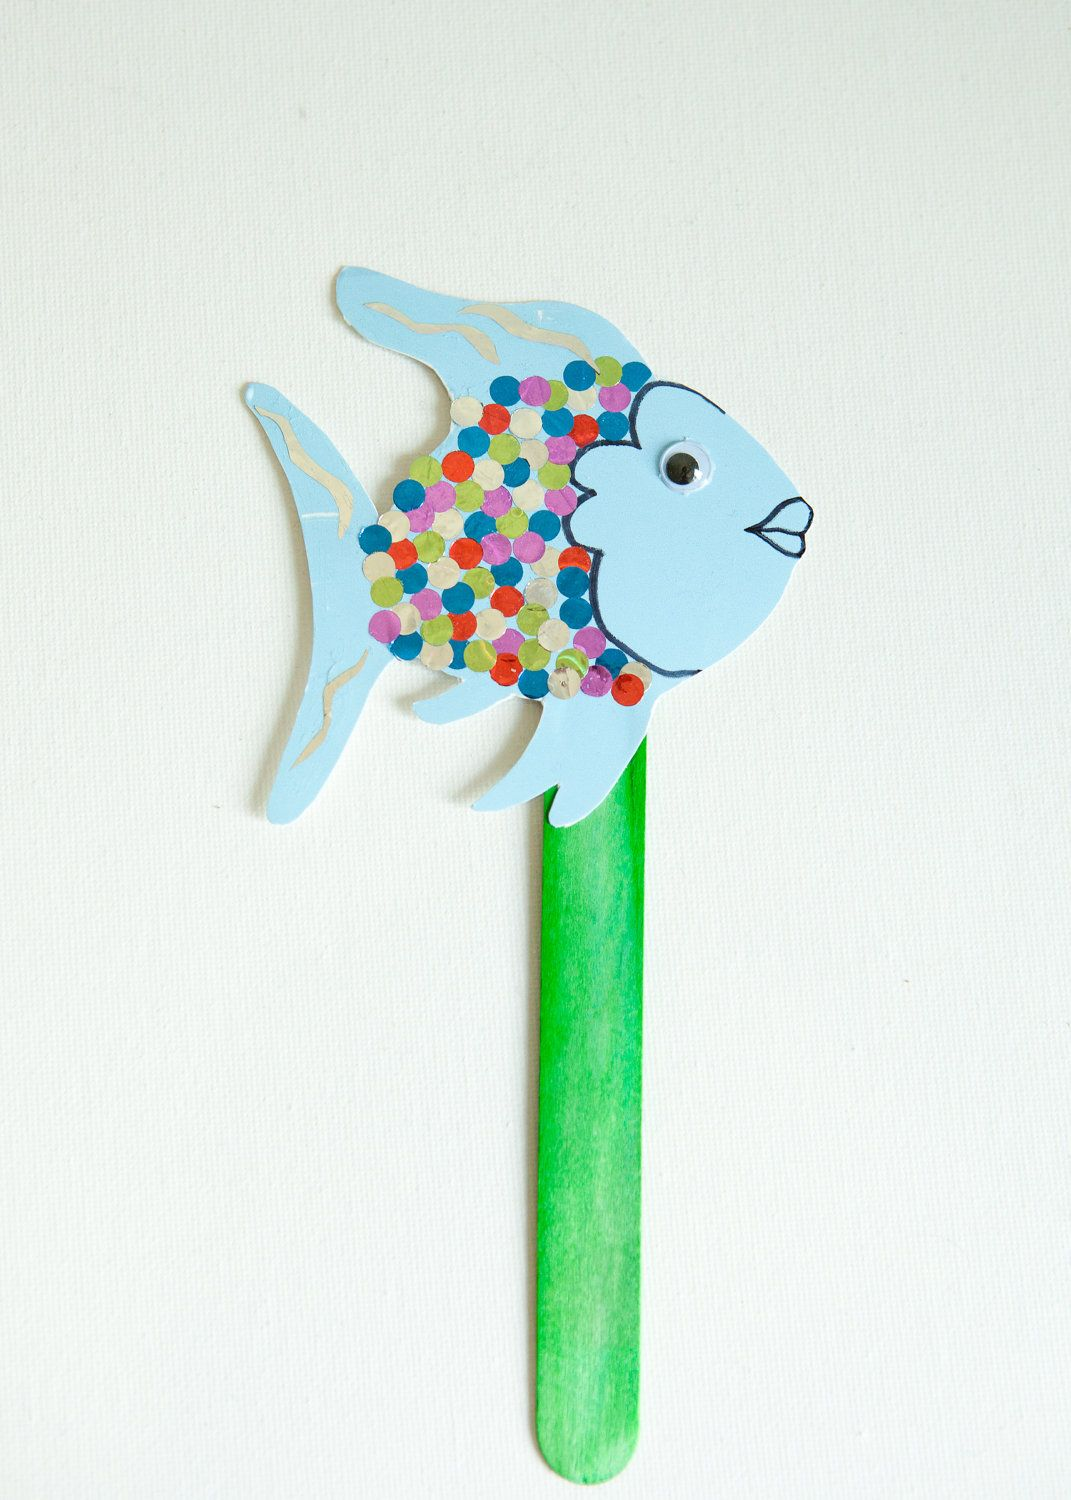 Rainbow Fish Puppet Kids Craft Kit Create Along While You Read For Toddlers Birthday Party